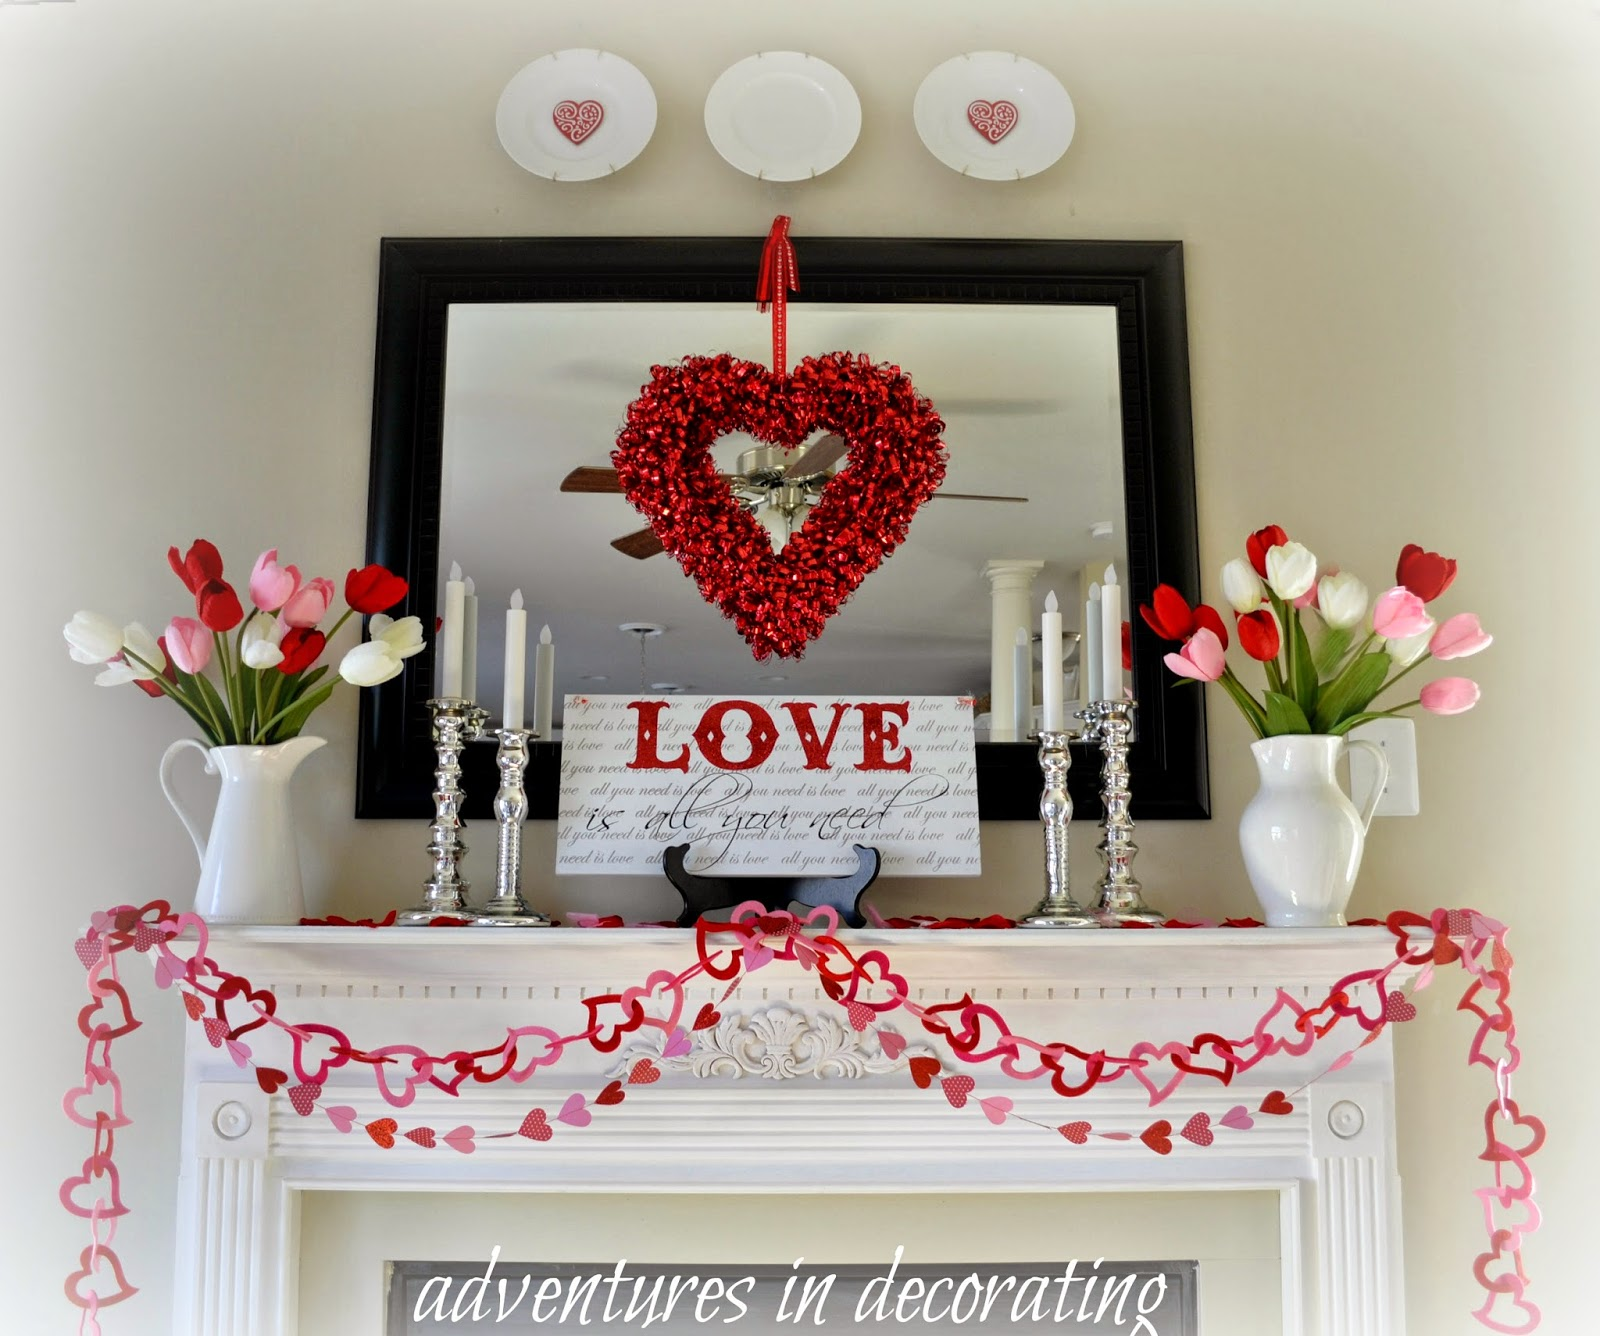 Valentine Home Decorations: Adventures In Decorating: 2015 Valentine Mantel/Heart And